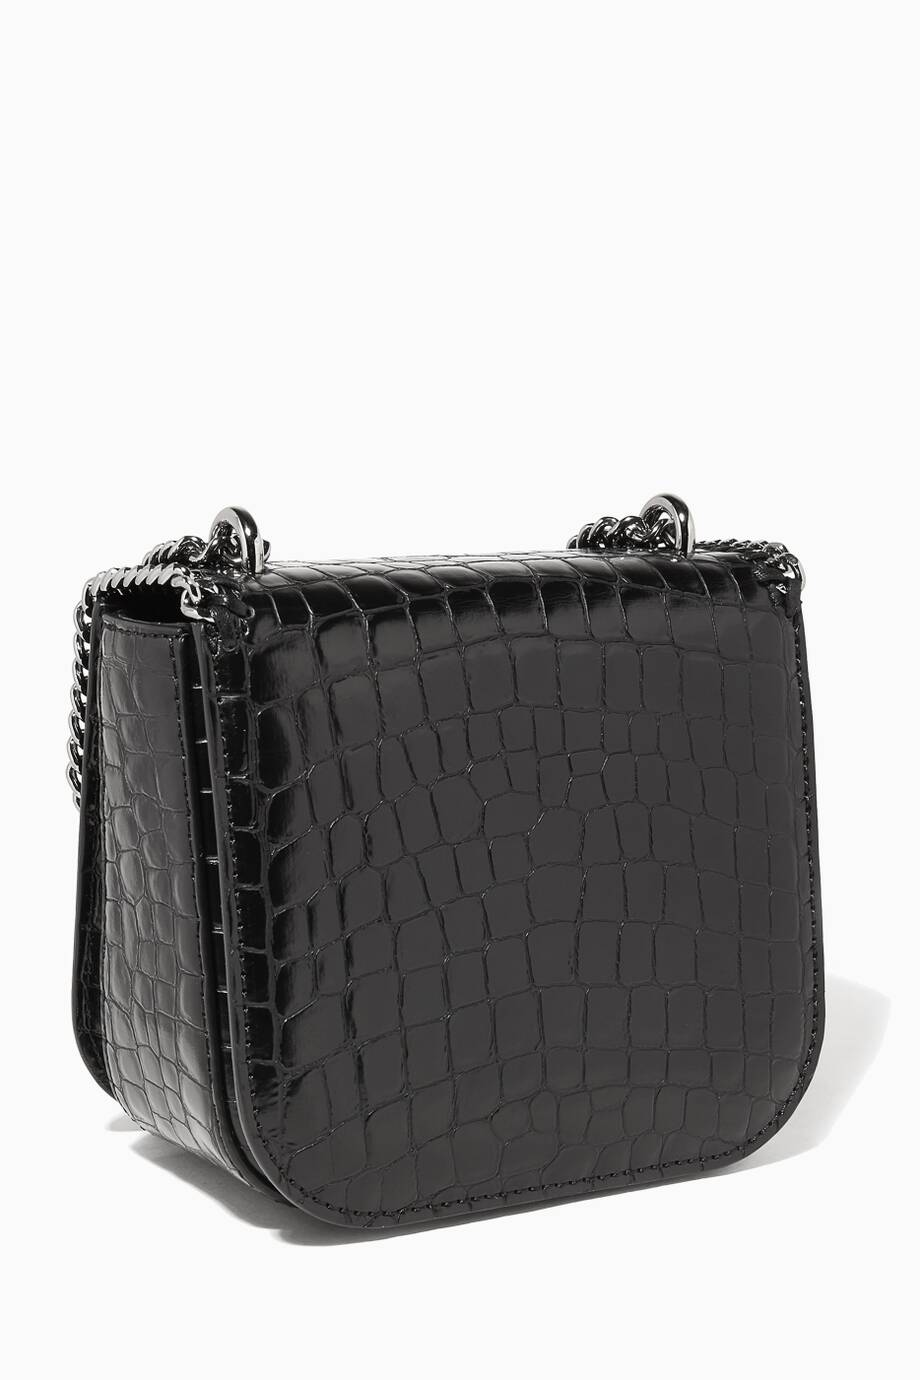 155e65ebe7ab Shop Luxury Stella McCartney Black Alter-Croc Mini Falabella Box ...